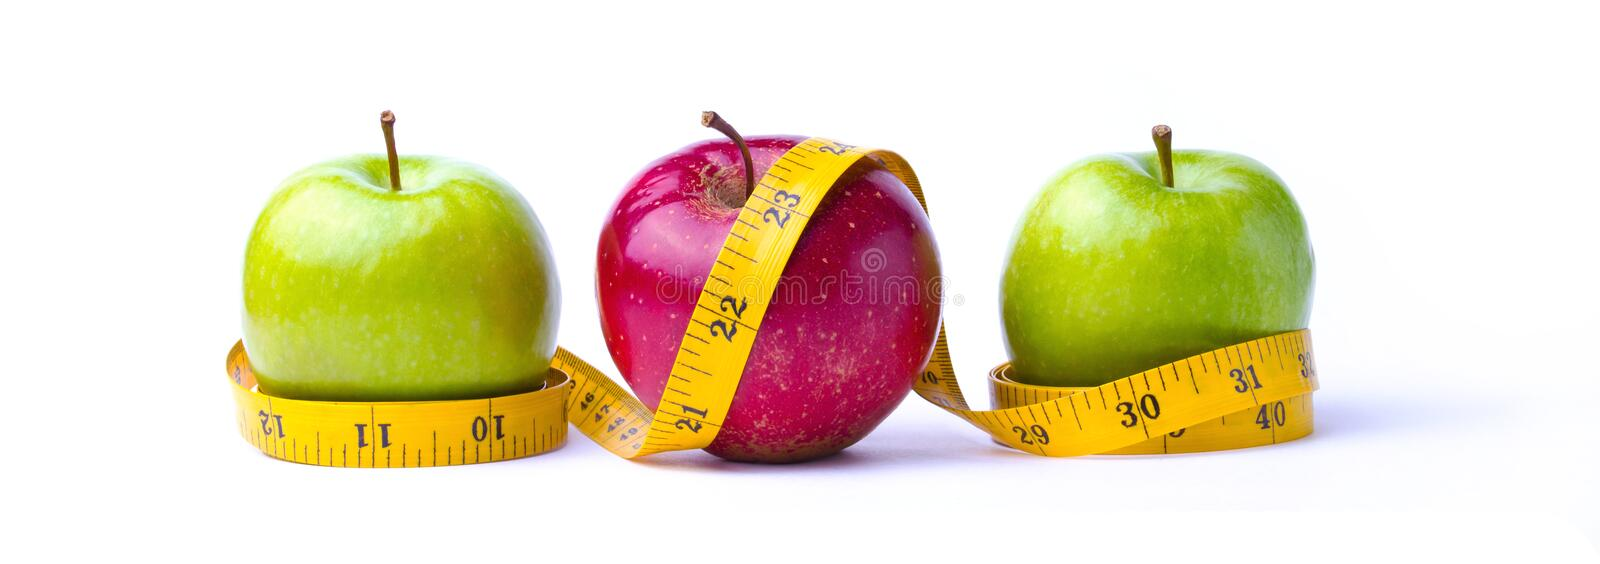 Three apples and measuring tape stock image